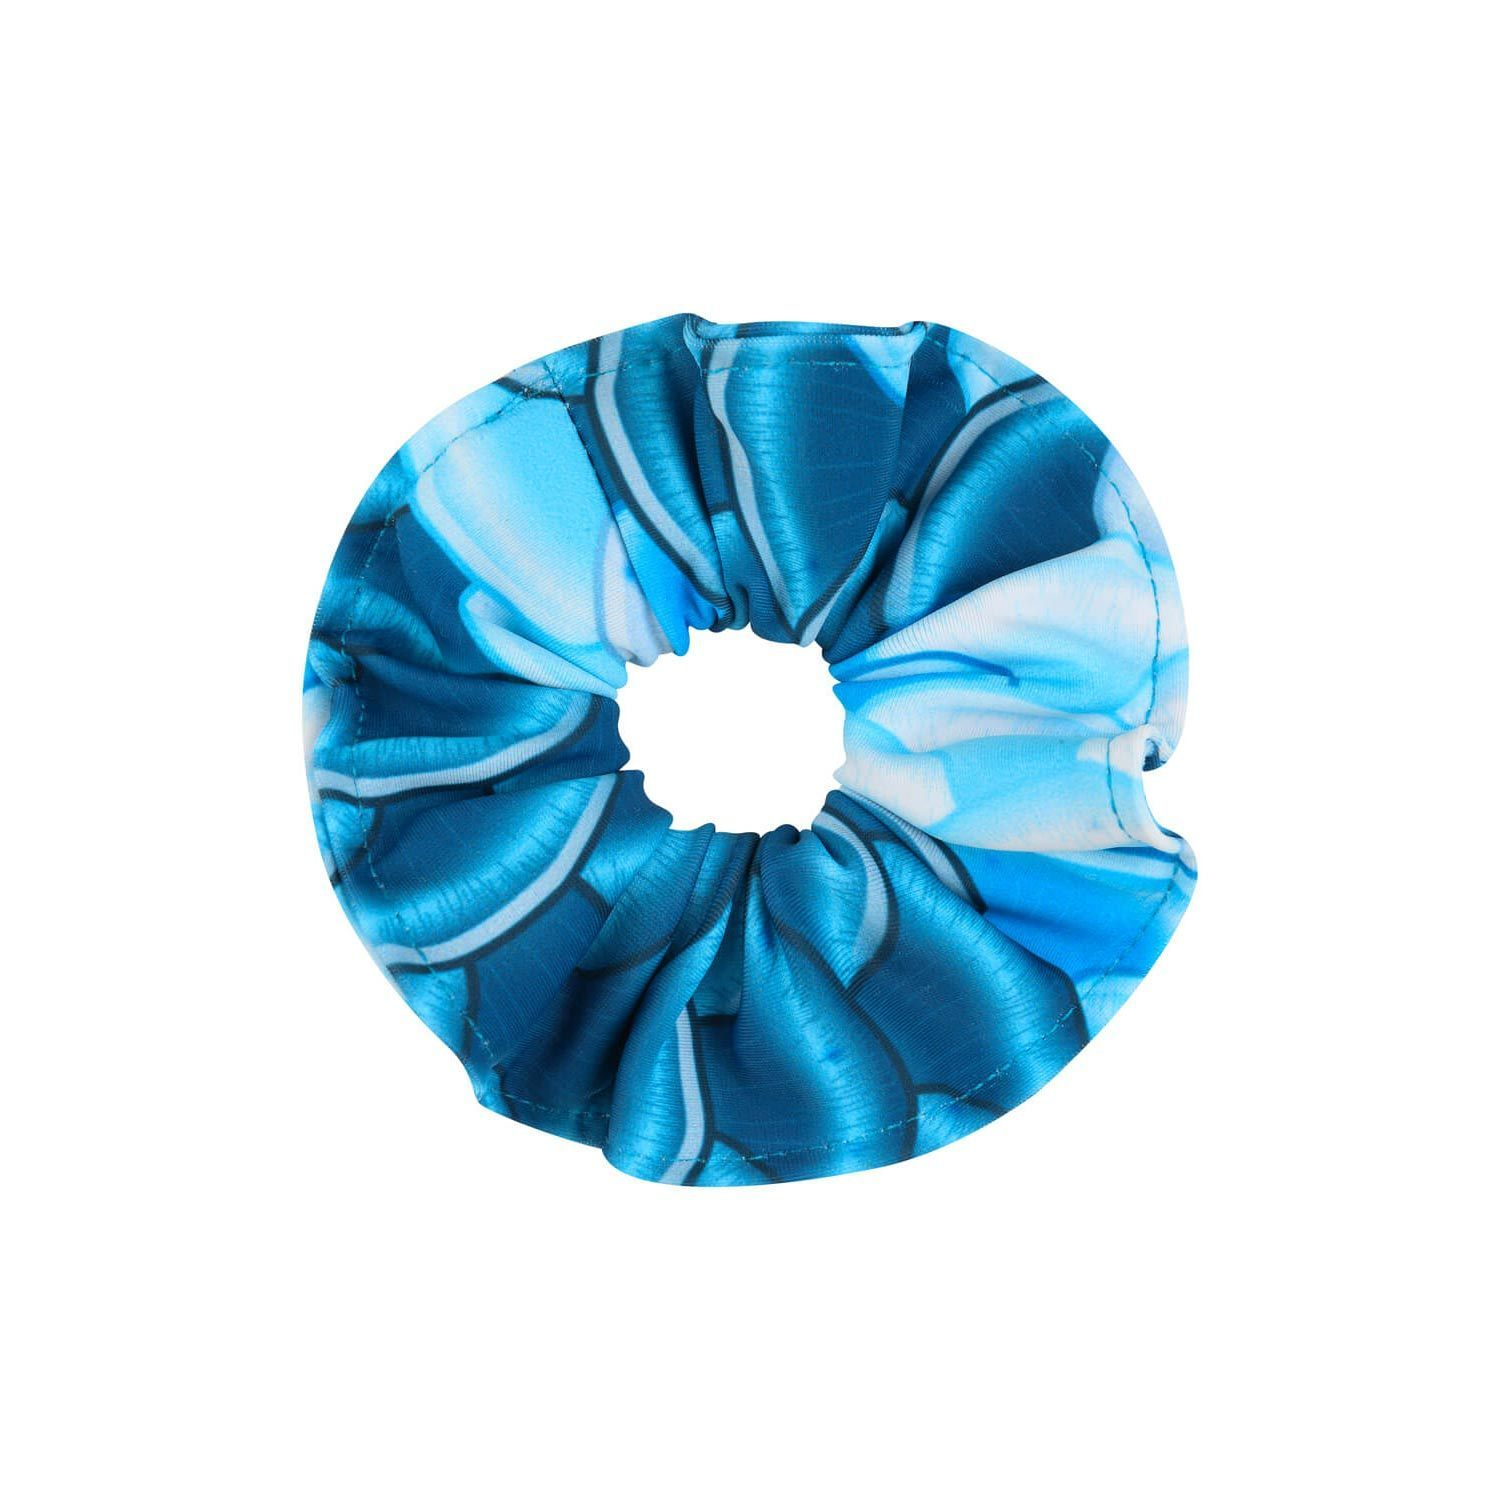 Kensington Bluebell Mermaid Hair Scrunchie